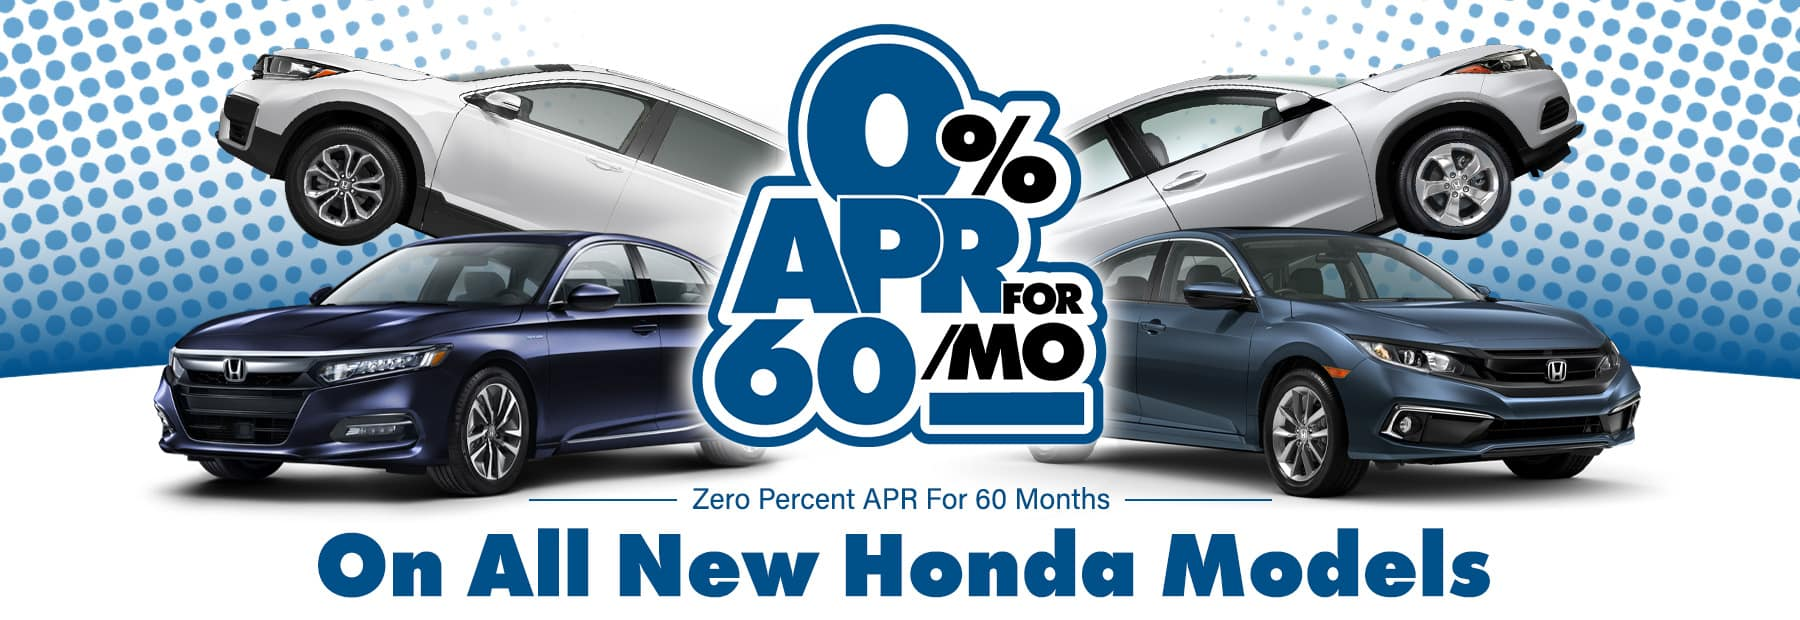 Zero Percent APR for 60 Months on All New Honda Models